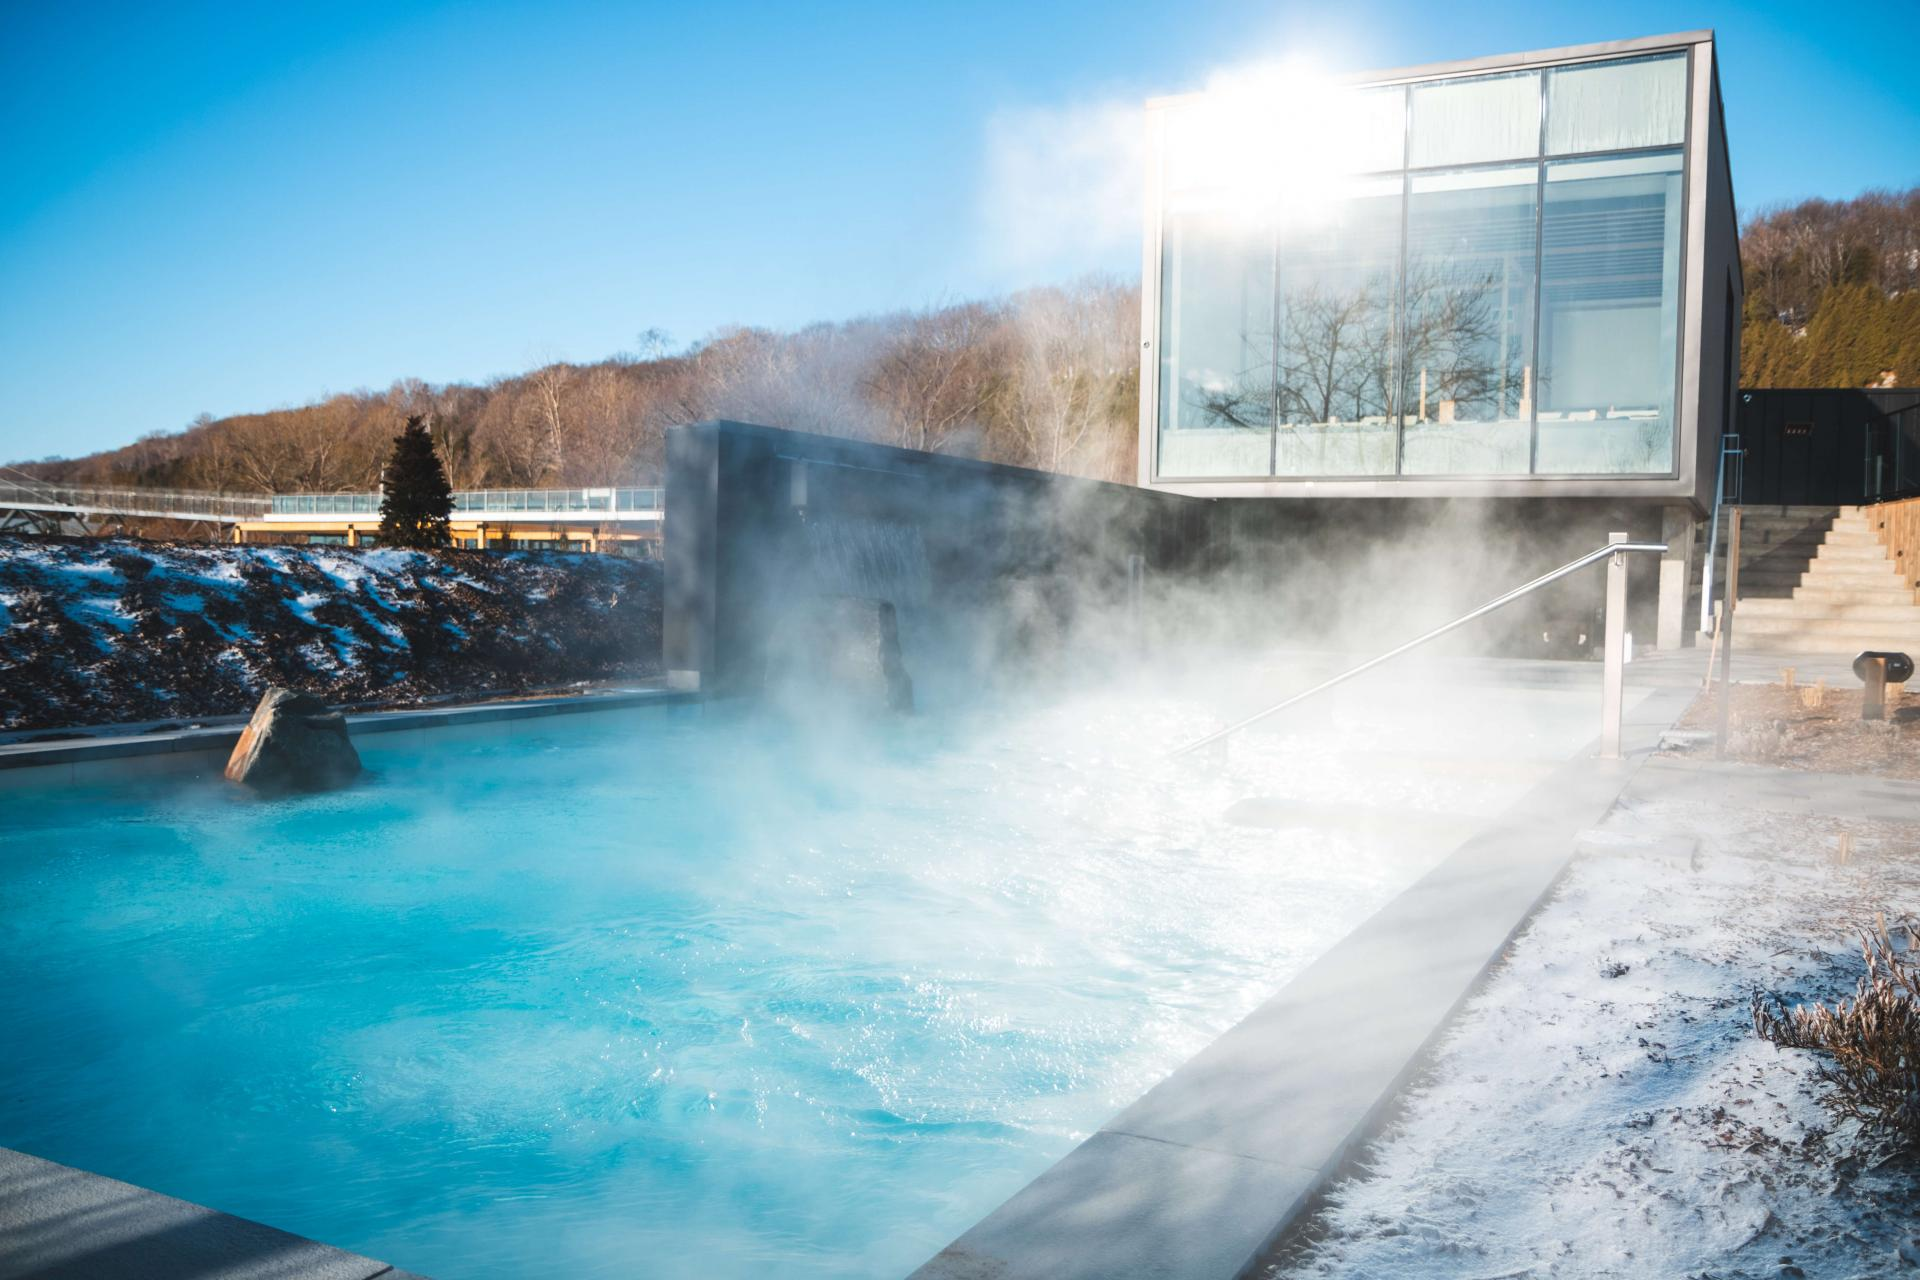 Canadian Pool and Hot Tub Council | Design & Construction Award 2019 | Silver